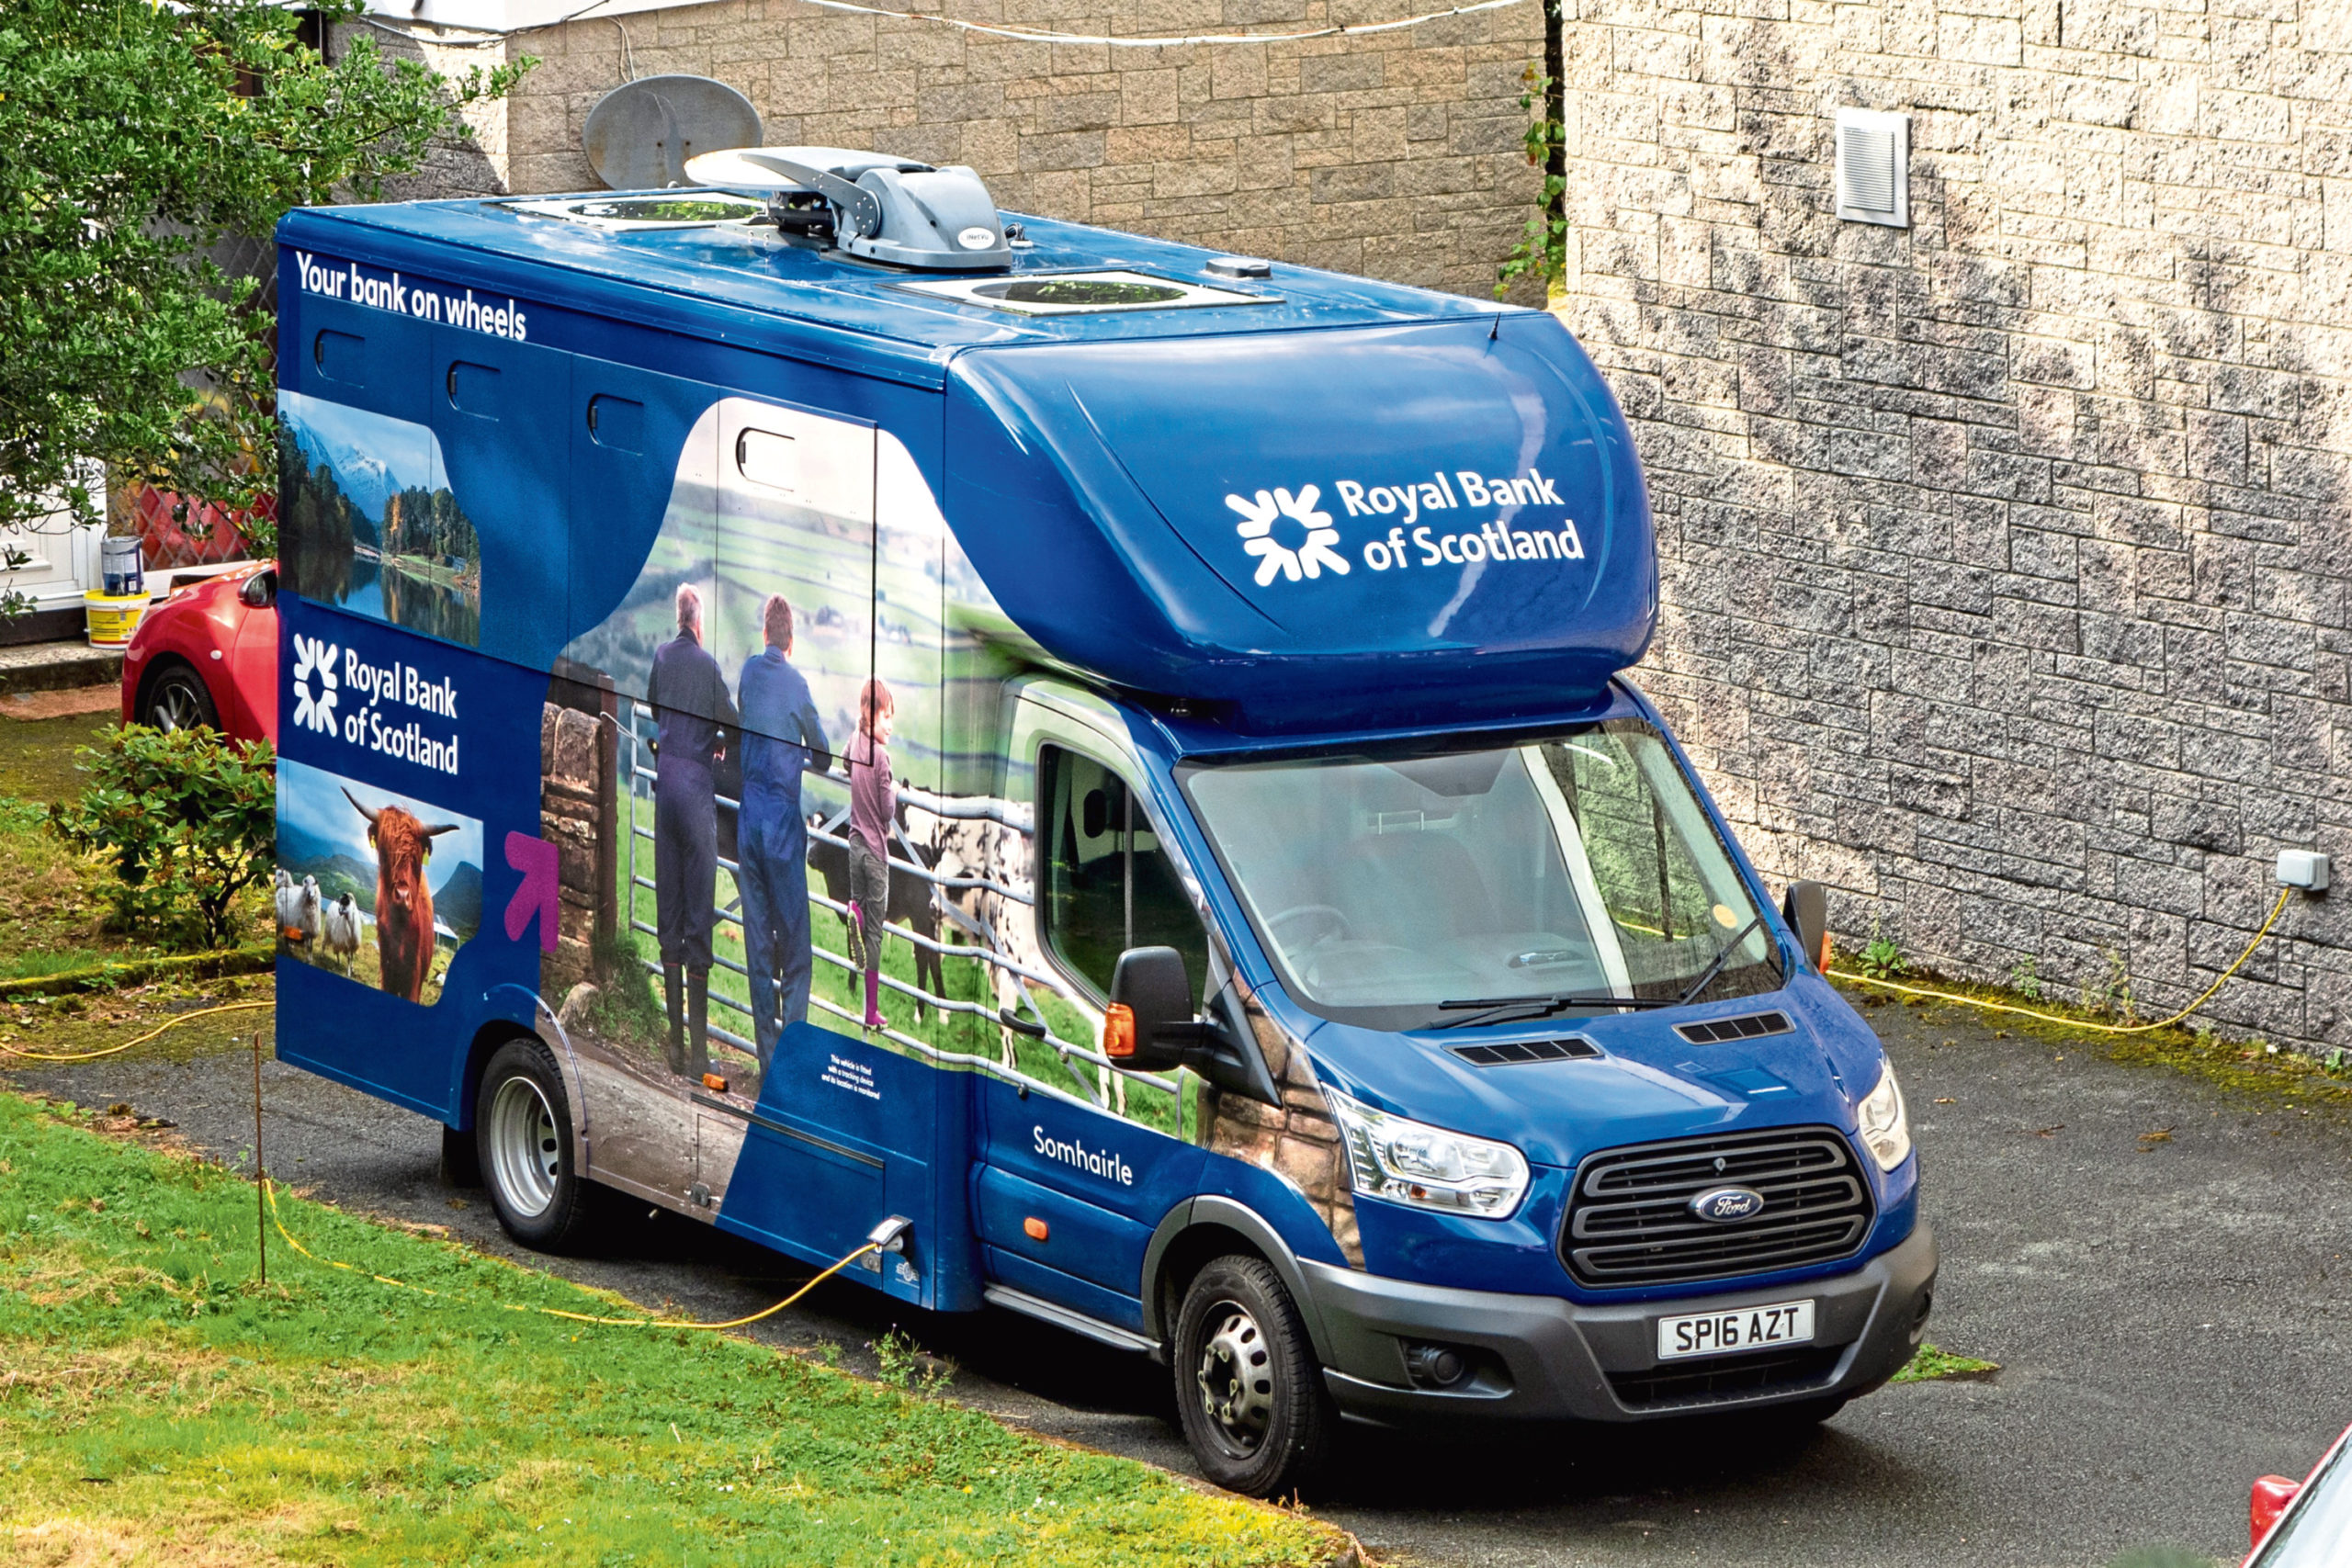 Mobile banks are to be temporarily scrapped as part of the response to the coronavirus pandemic